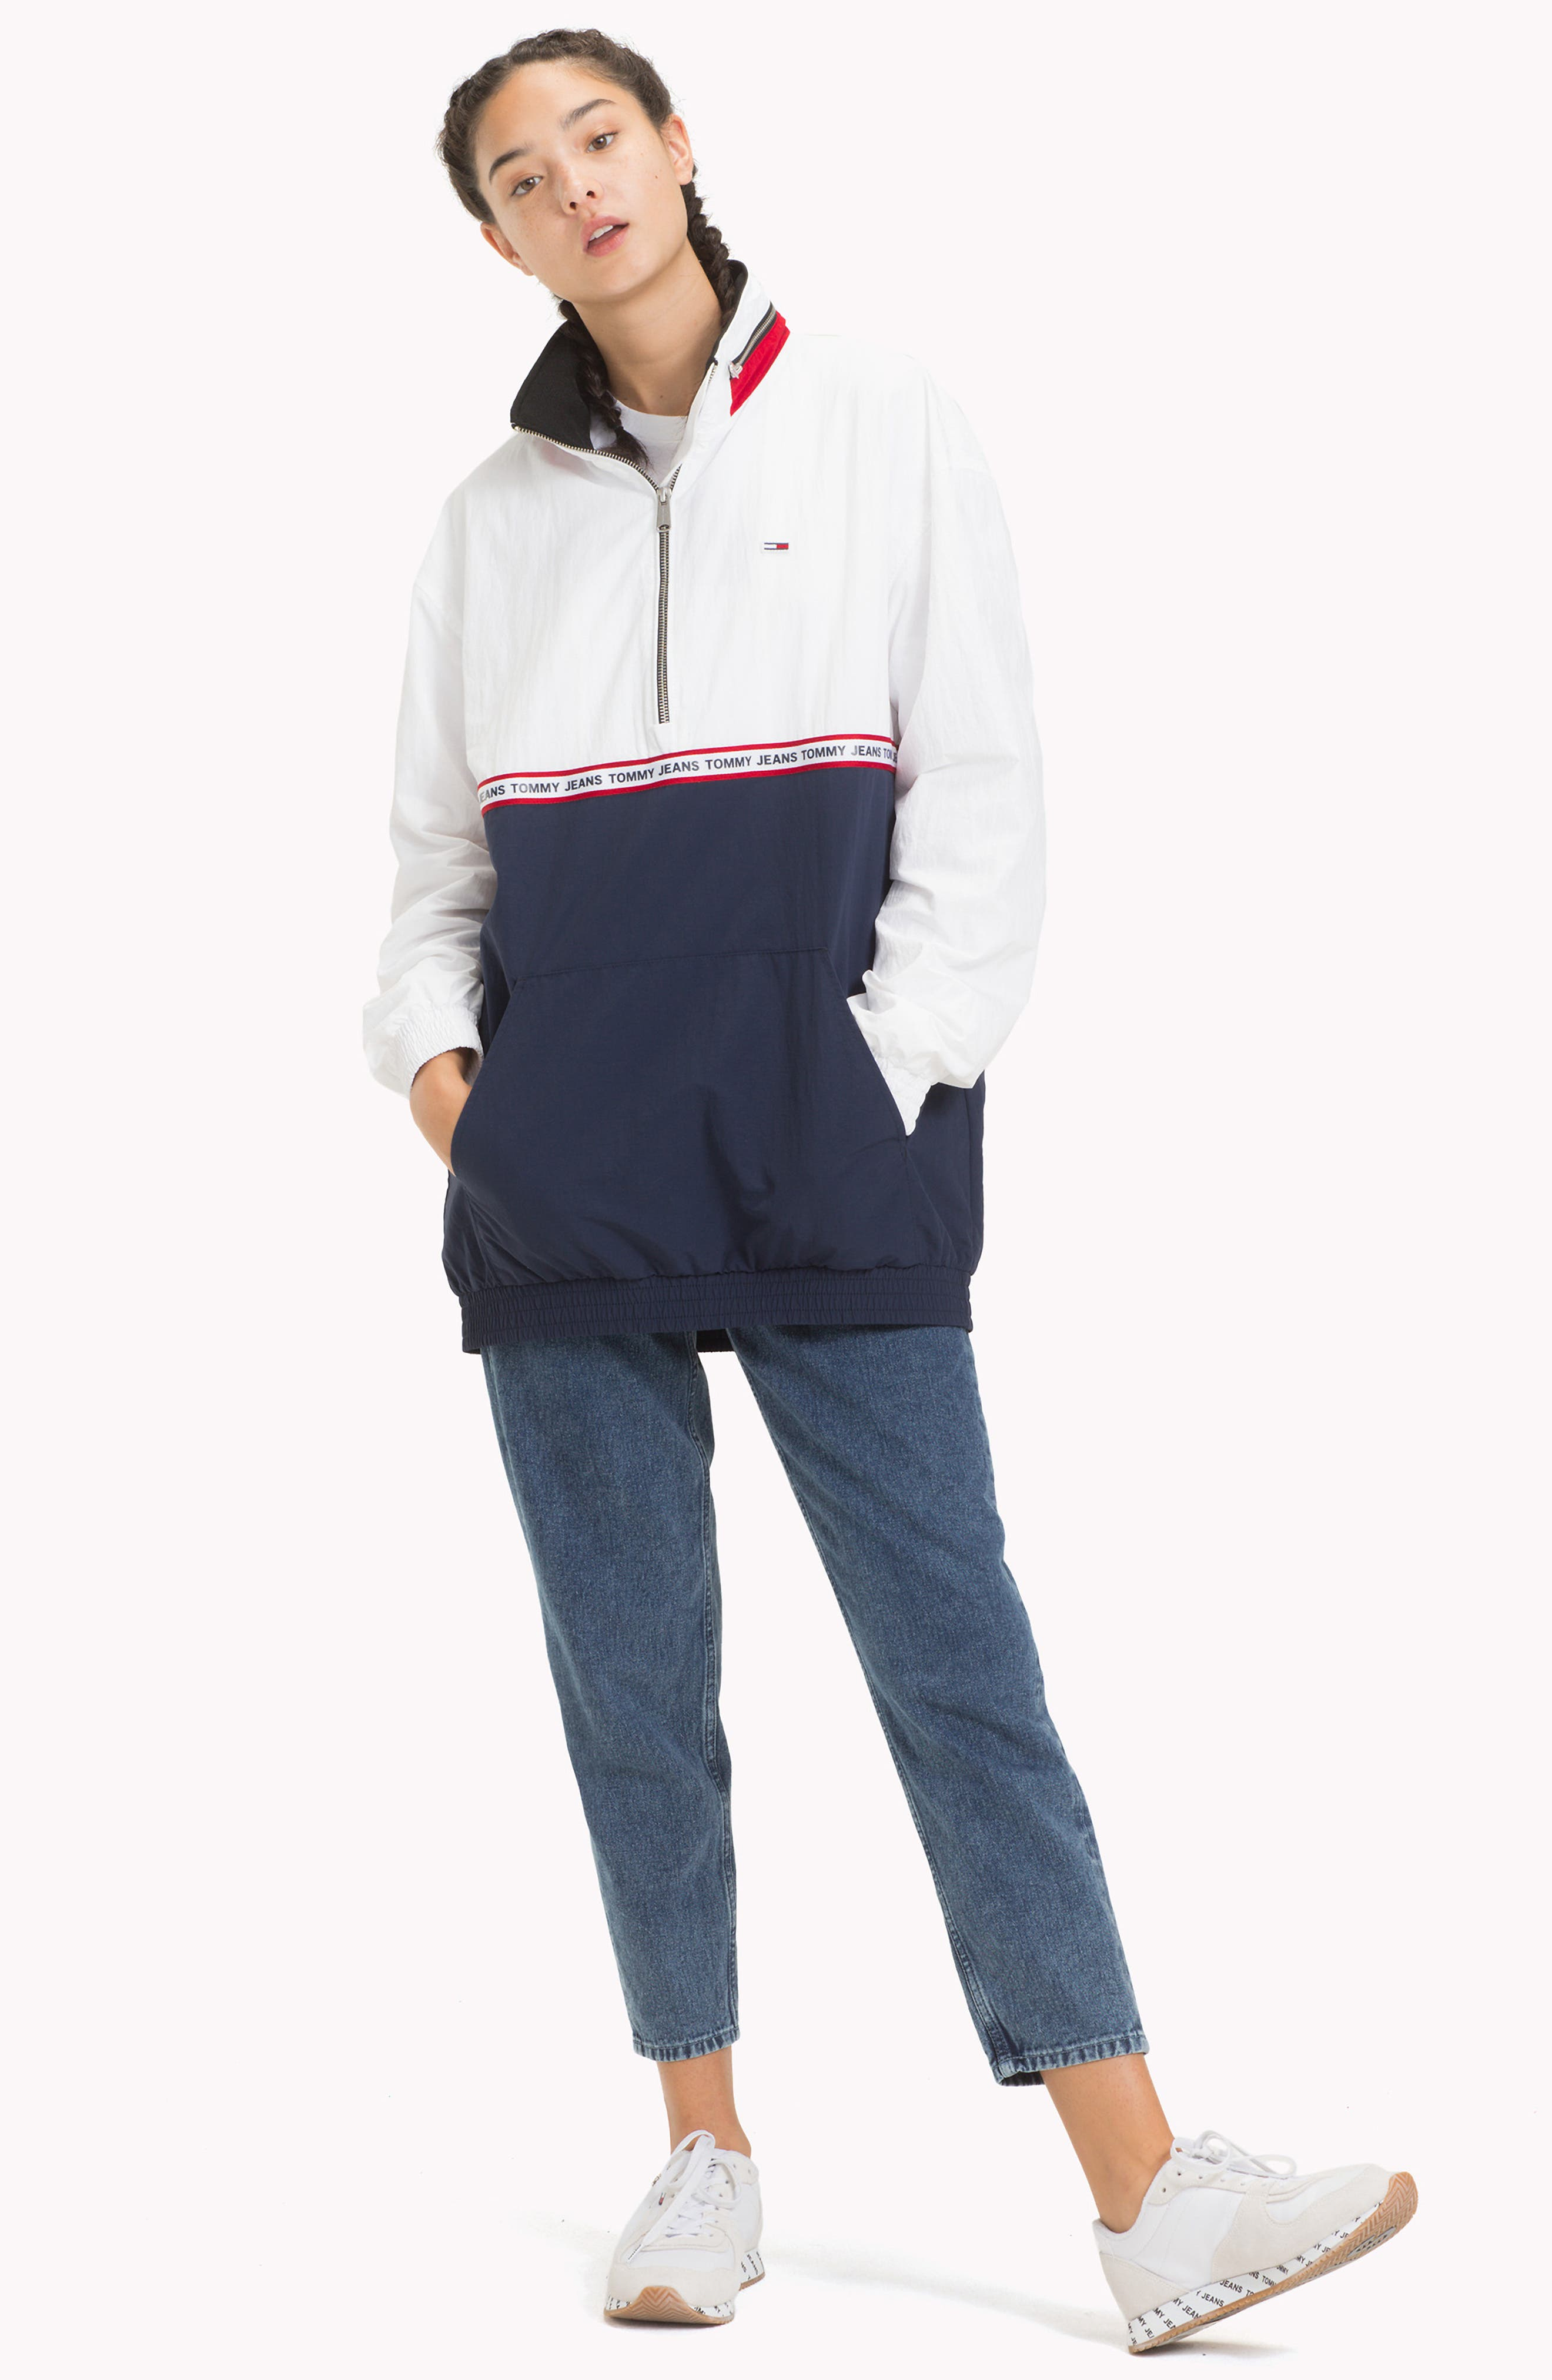 TOMMY JEANS,                             TJW Logo Tape Pullover,                             Alternate thumbnail 8, color,                             400